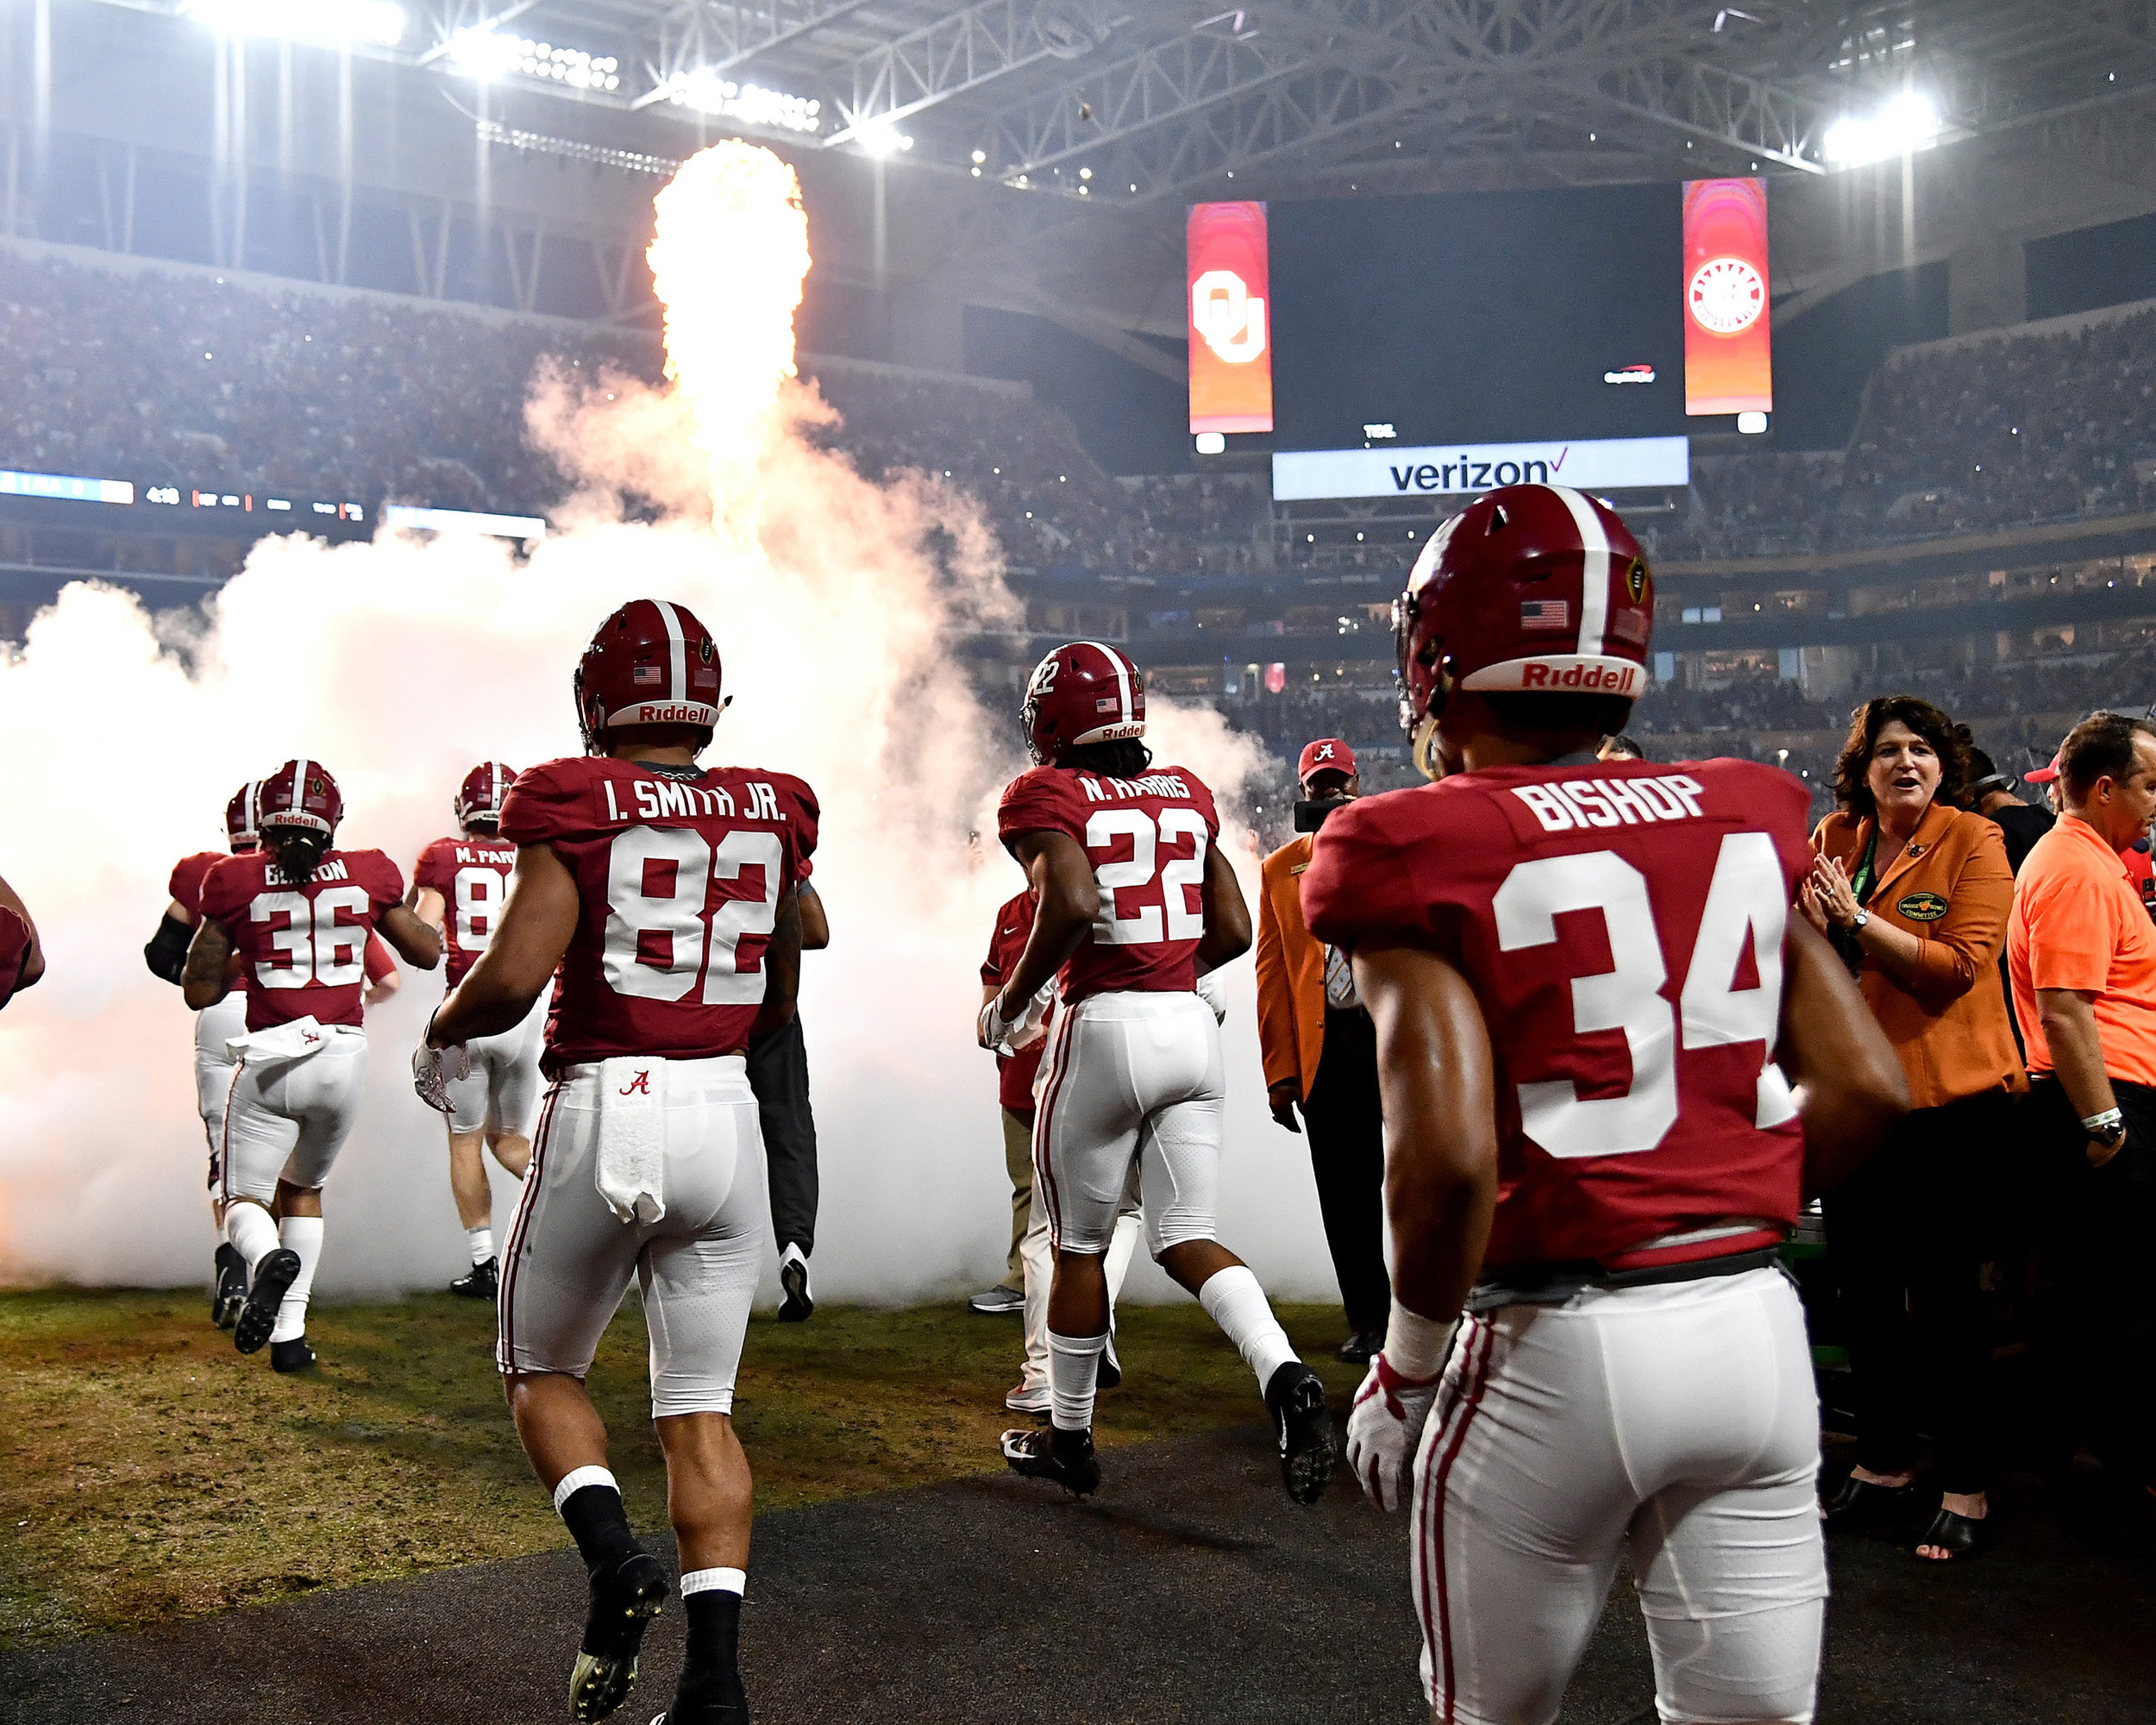 Players take the field prior to the kickoff of the Capital One Orange Bowl, featuring the Alabama Crimson Tide and the Oklahoma Sooners, at Hard Rock Stadium in Miami Gardens, Fla., Saturday, Dec. 29, 2018. Alabama wins 45-34. (Photo by Lee Walls)